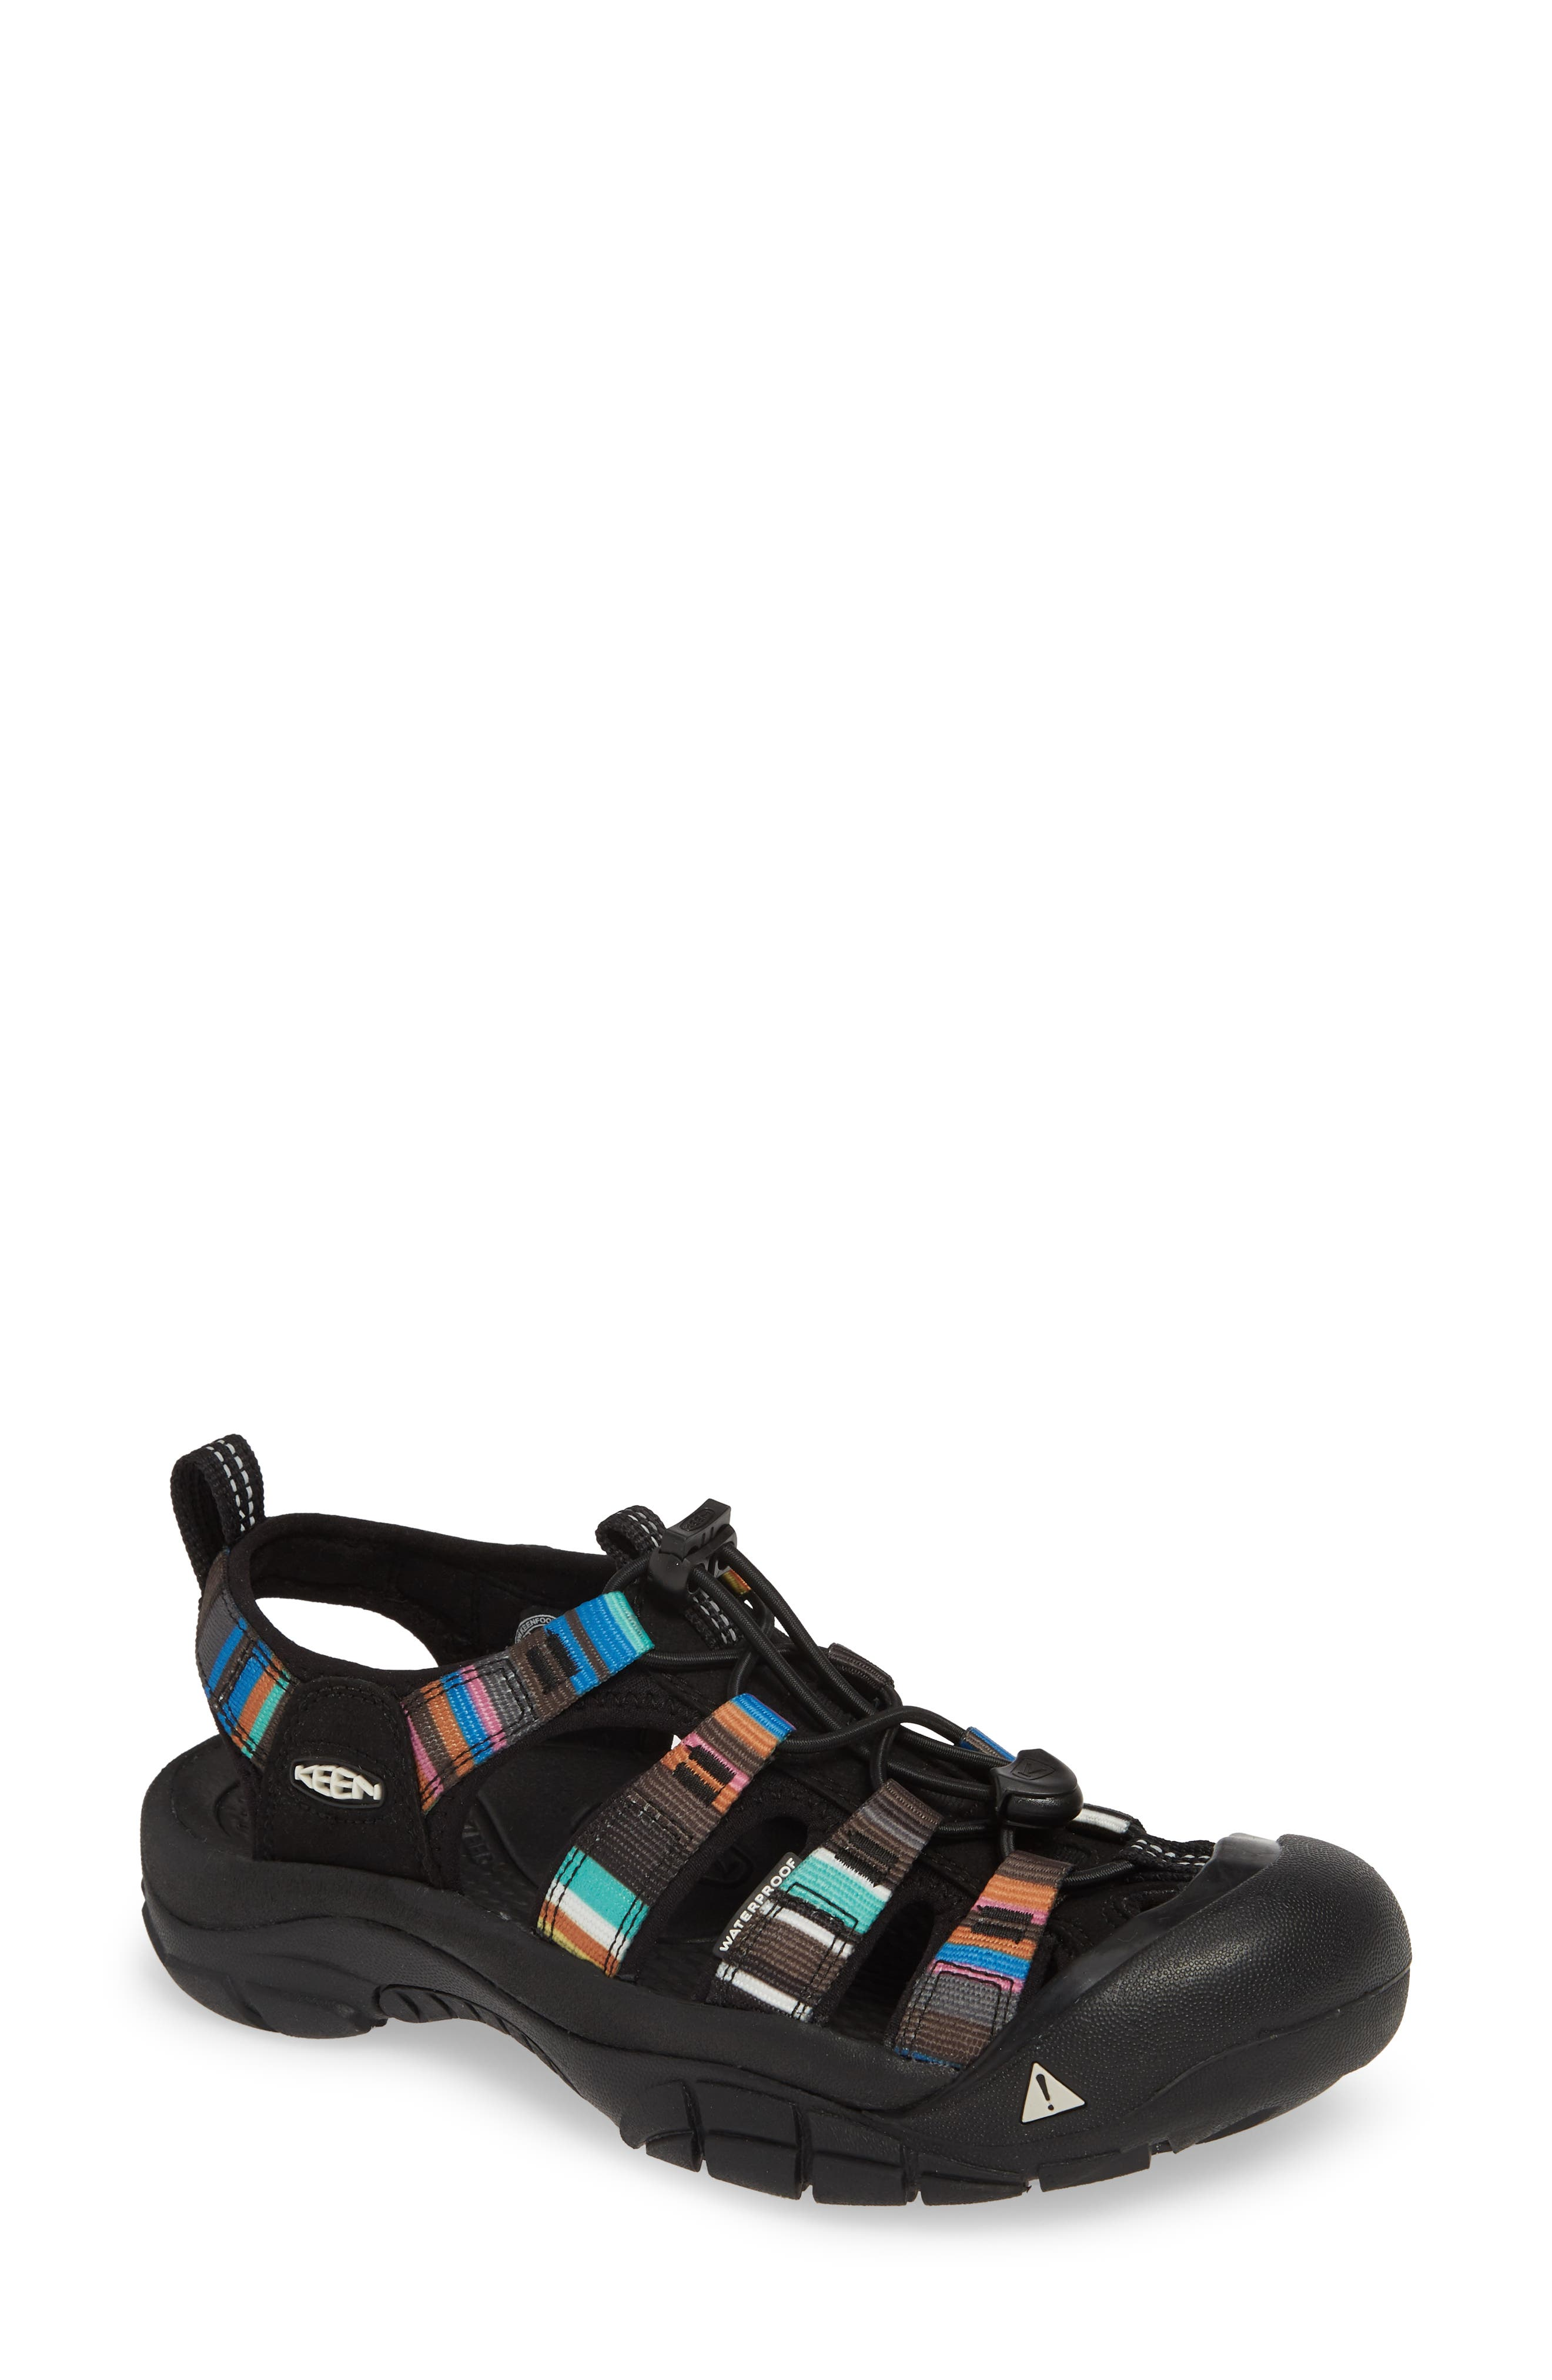 6f5061105b35 water shoes for women